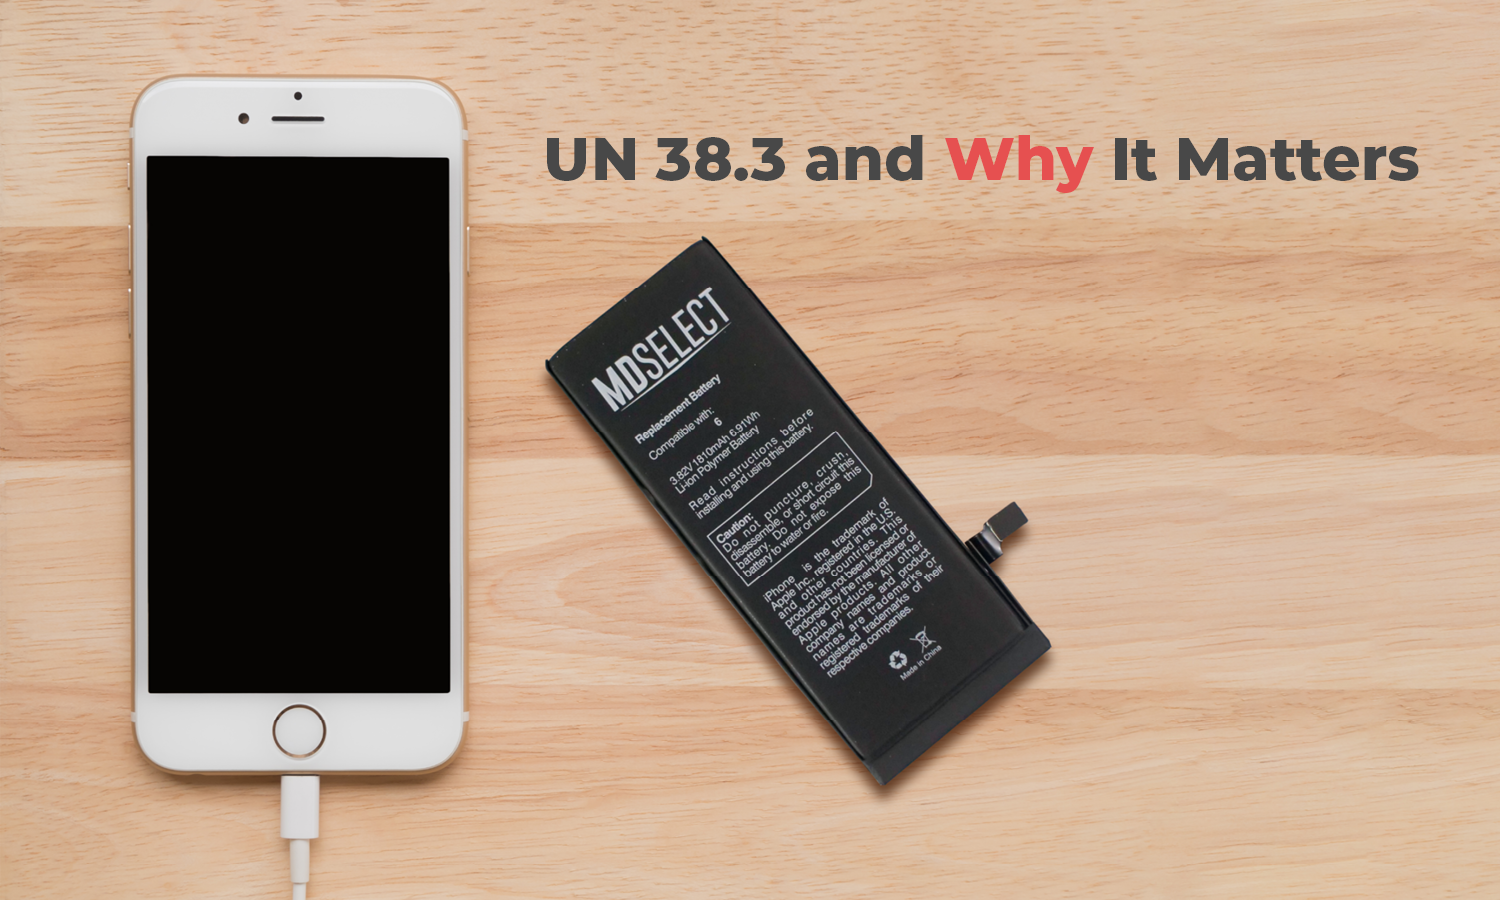 What is the UN 38.3 Certification and Why Does it Matter?